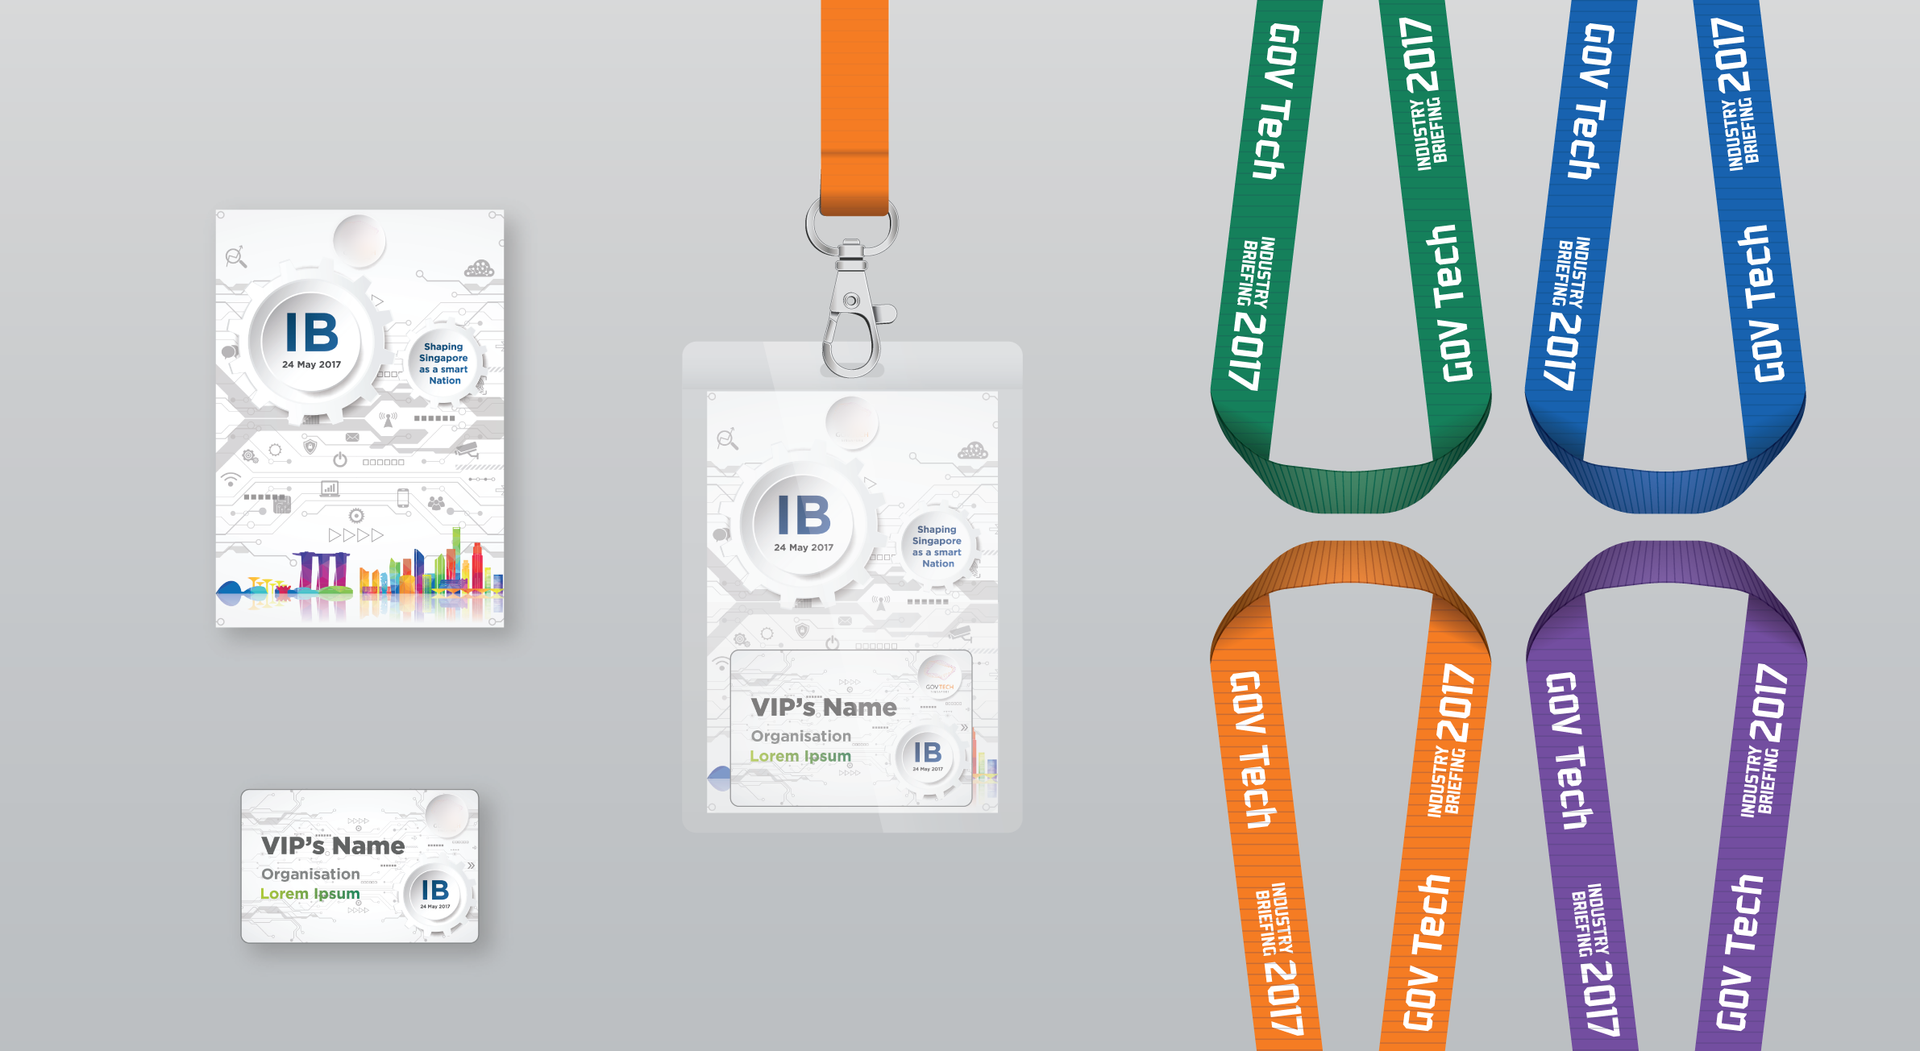 Industry Briefing Name Badge & Lanyard